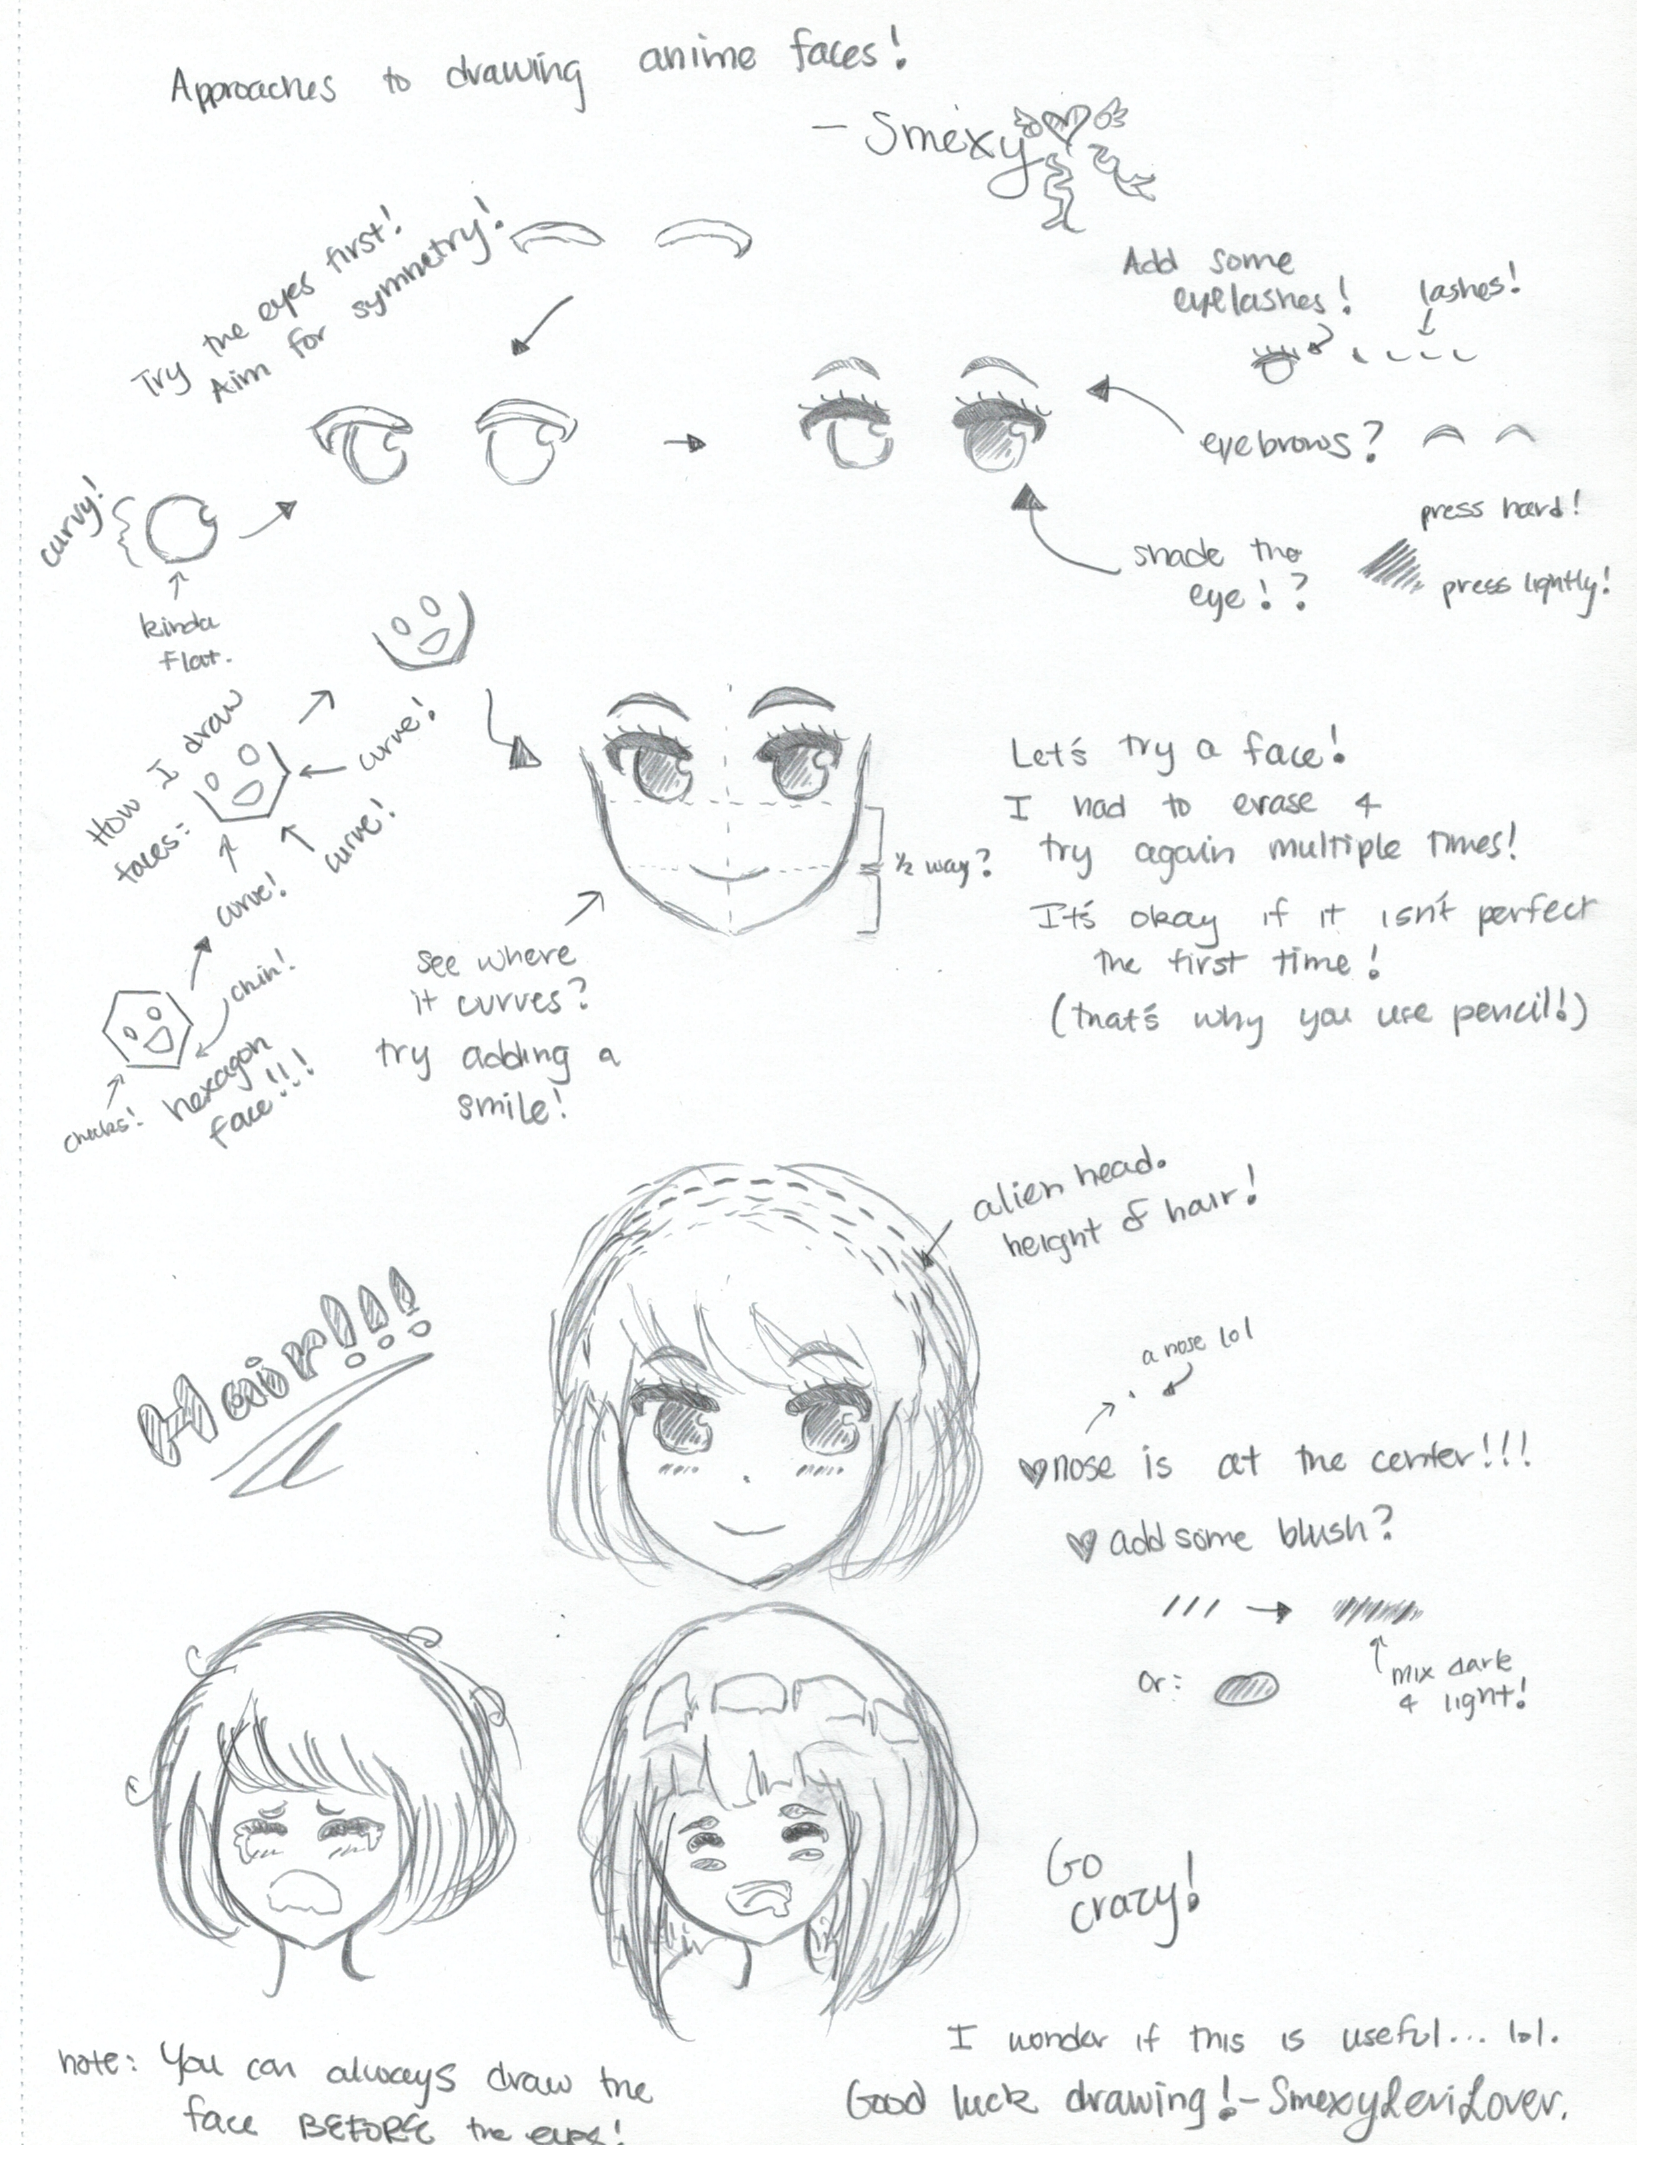 Smexyu0026#39;s Anime Face Tutorial (attempt 1) By SmexyViButt On DeviantArt